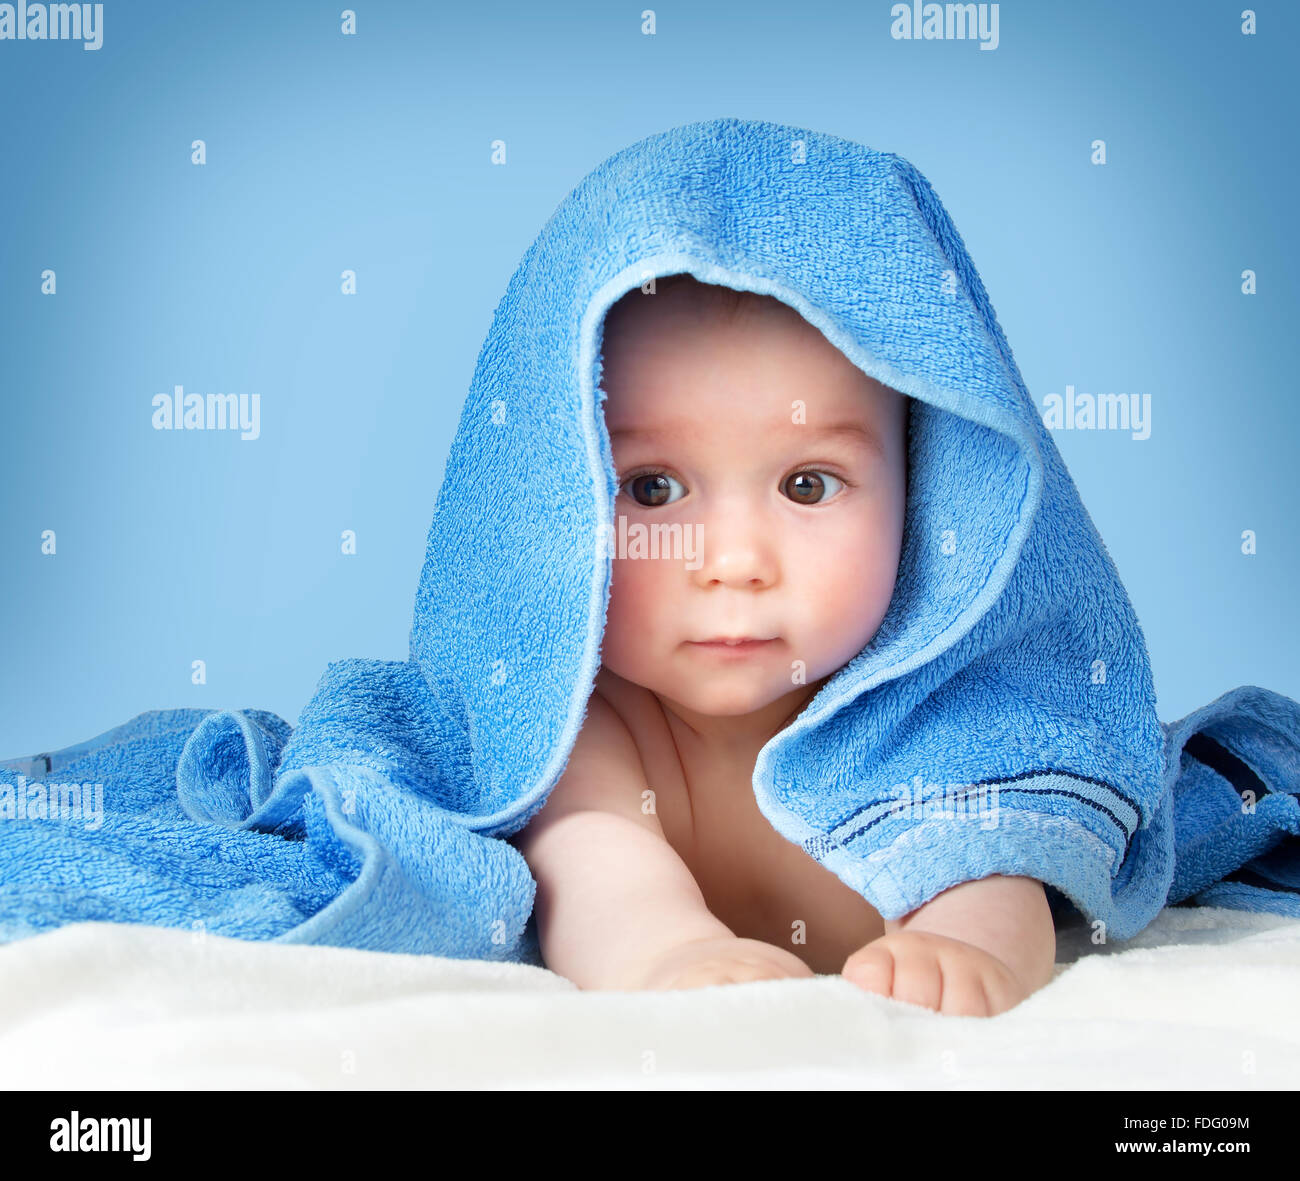 Cute baby in a towel - Stock Image